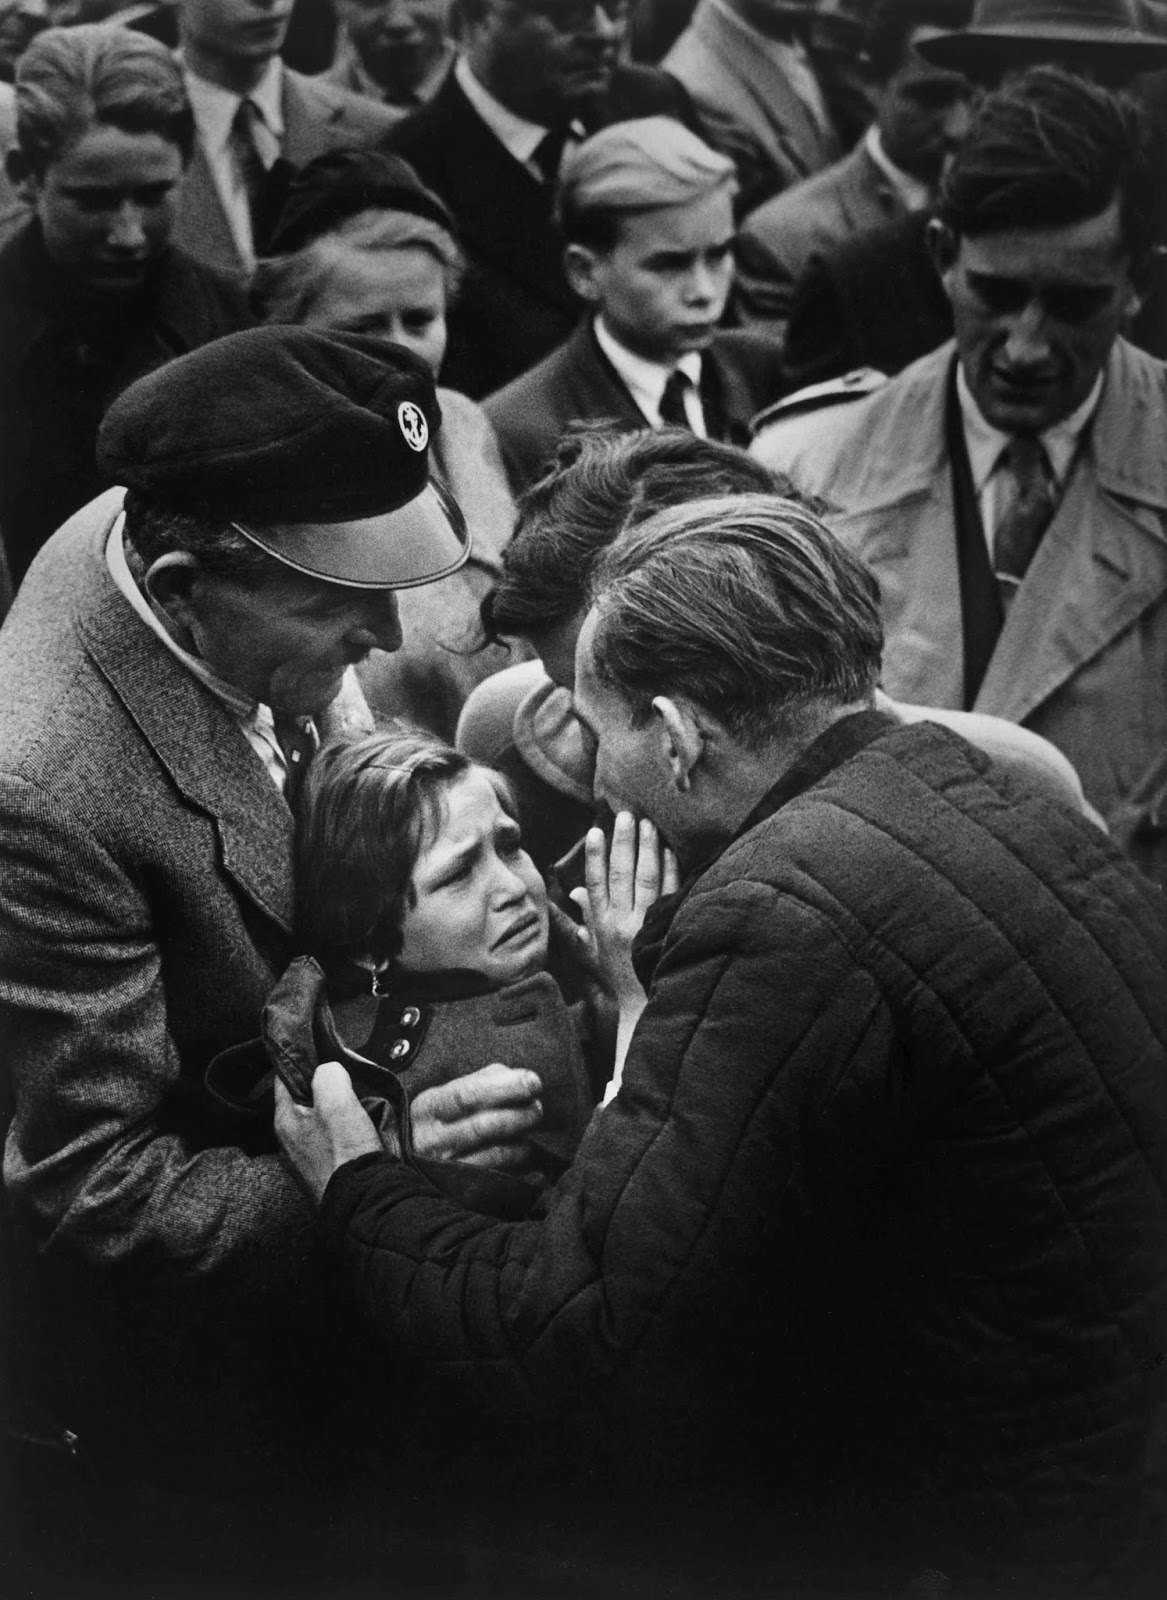 A German child meets her father for the first time, 1956.